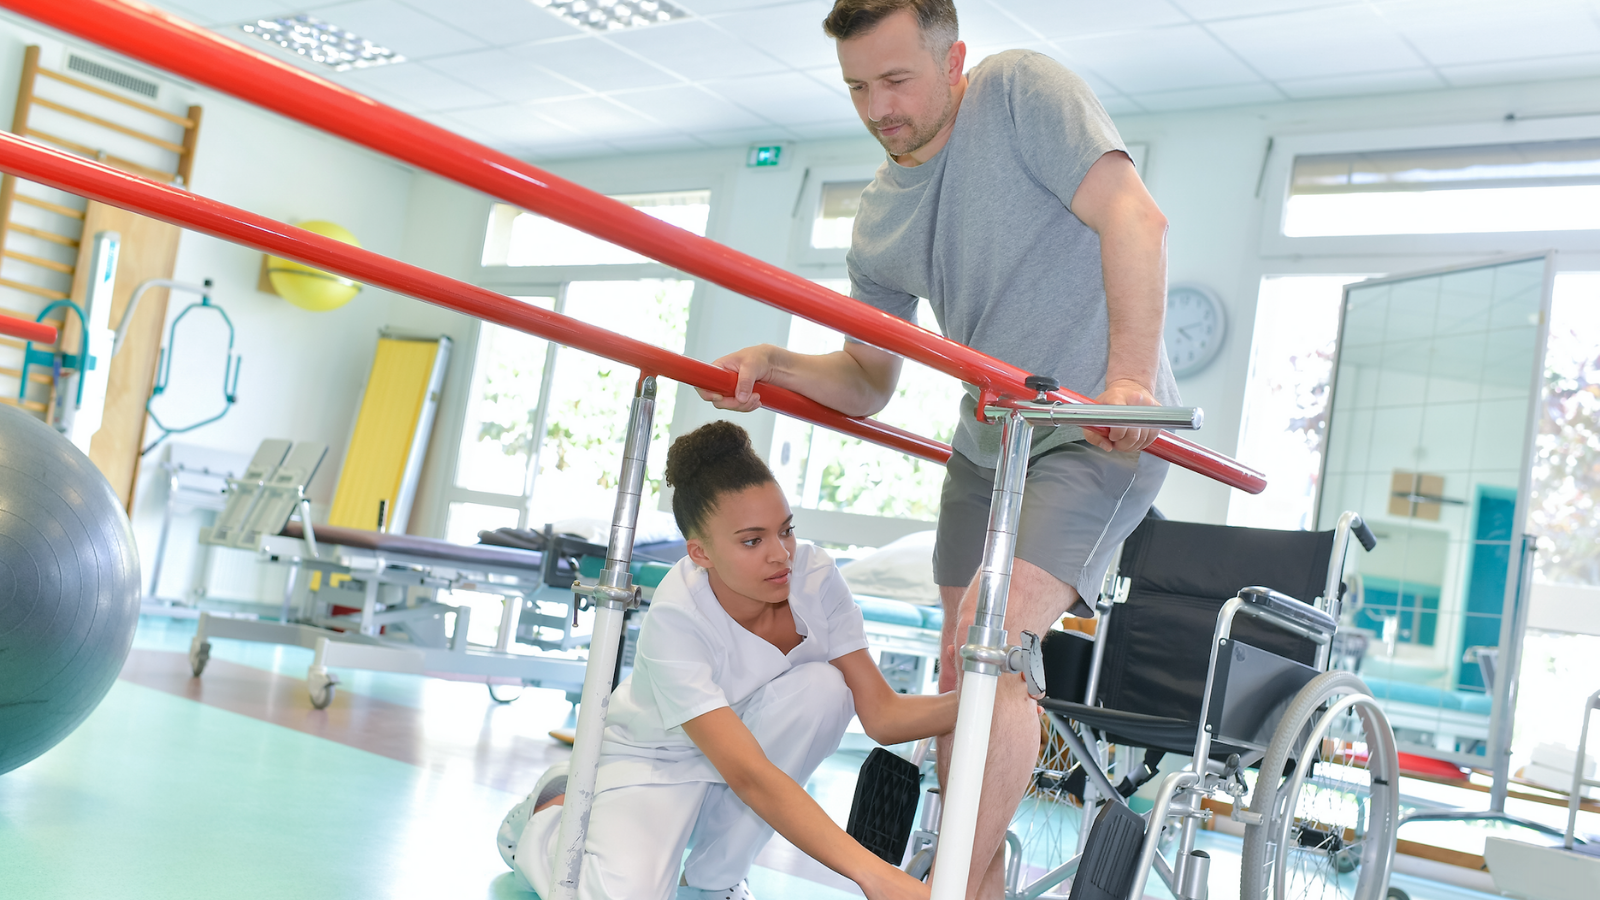 Everything you need to know about becoming an occupational therapist